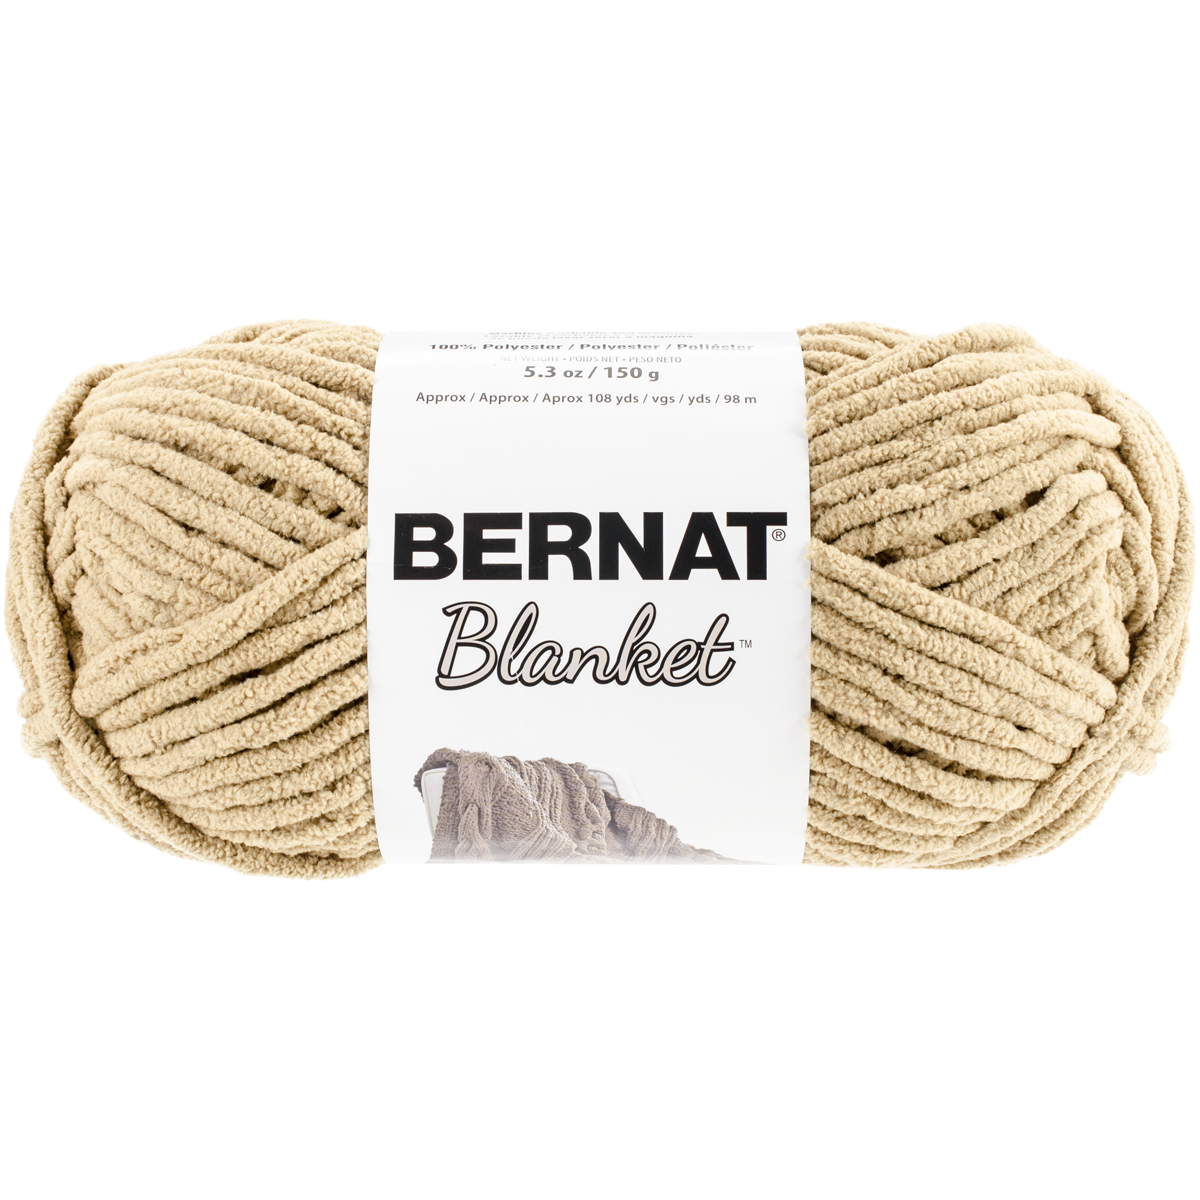 Crochet Patterns For Bernat Blanket Yarn : Discount Yarn ? Bernat Yarn - Discount Bernat Yarn ? Blanket Yarn ...